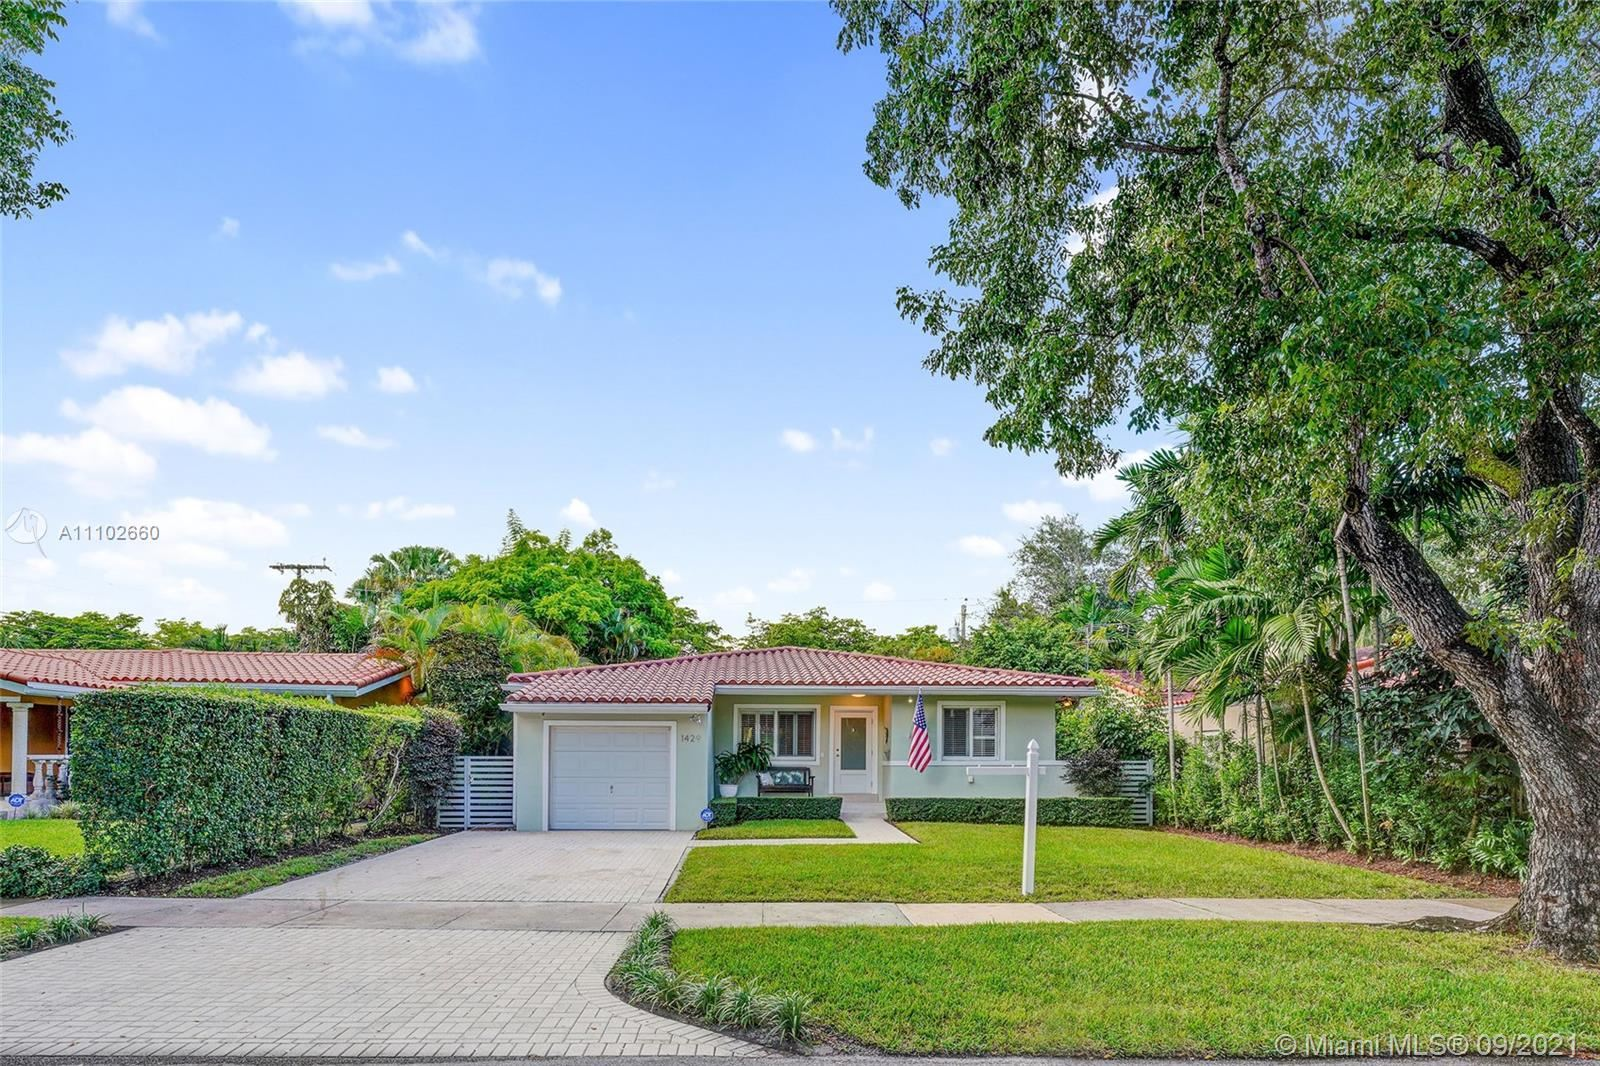 1429 Messina Ave, Coral Gables, FL 33134 - #: A11102660